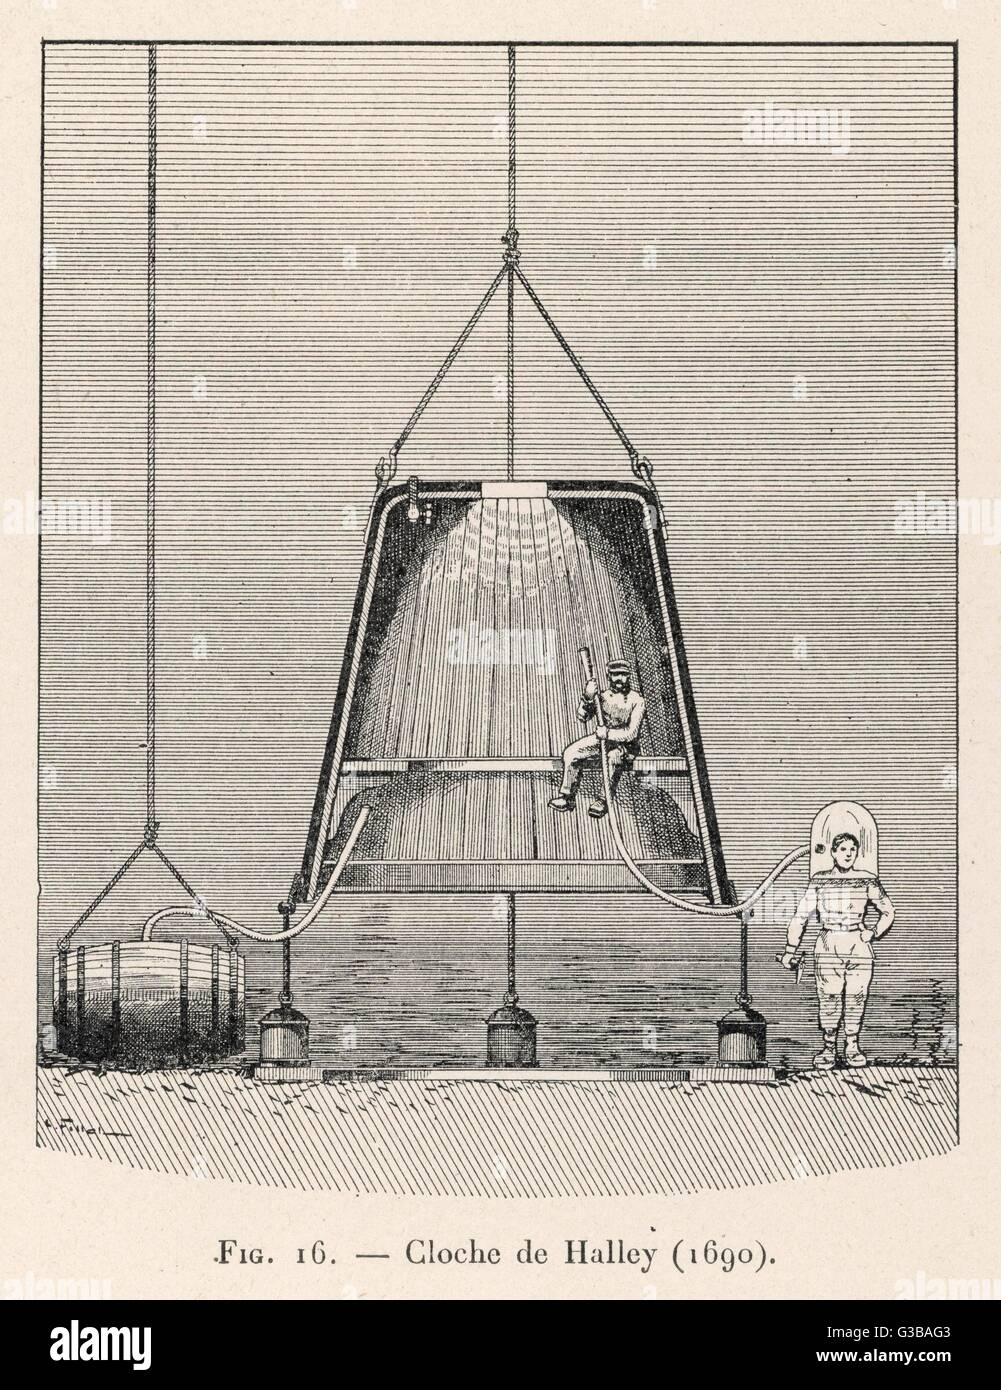 Cross-section of his bell,  showing how it is proposed  that the diver could emerge  wearing a smaller bell on his Stock Photo